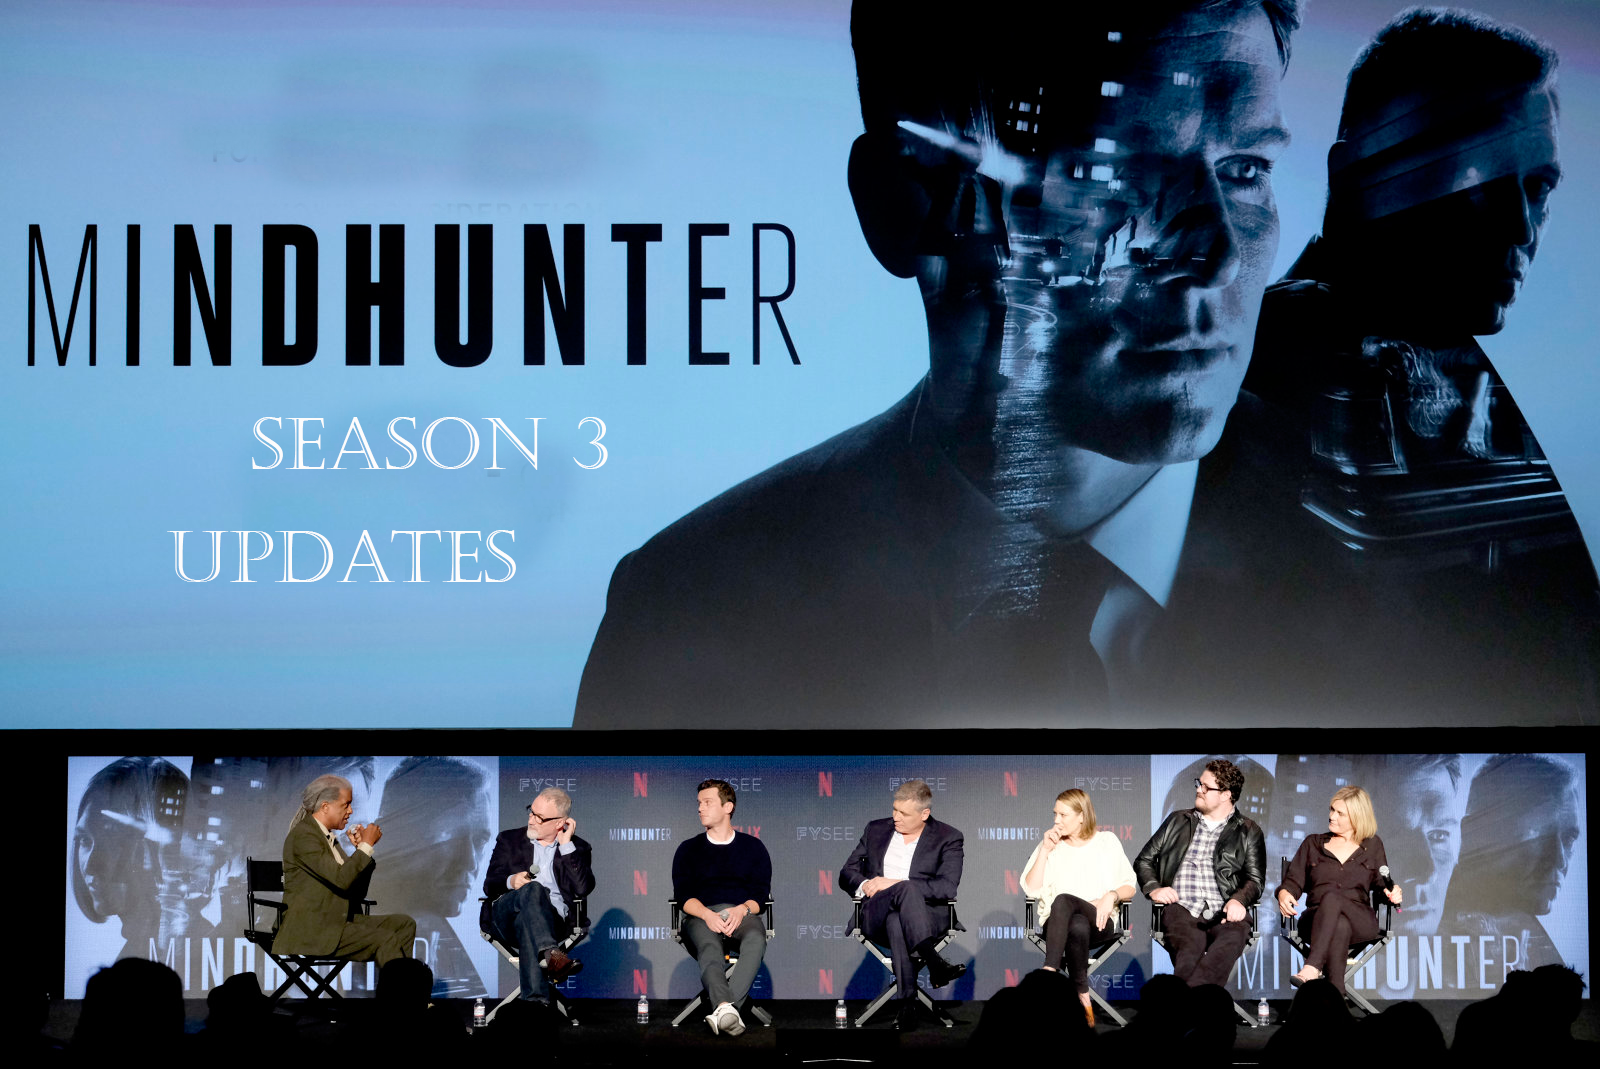 Mindhunter Season 3 Updates and Rumours